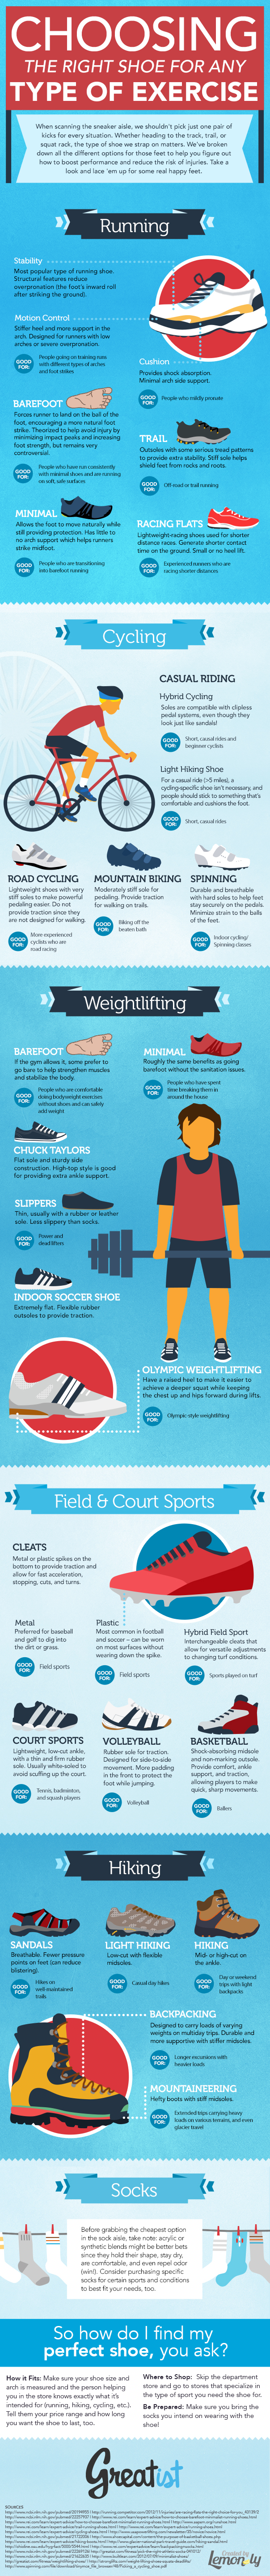 Choosing the Right Shoe for Any Type of Exercise